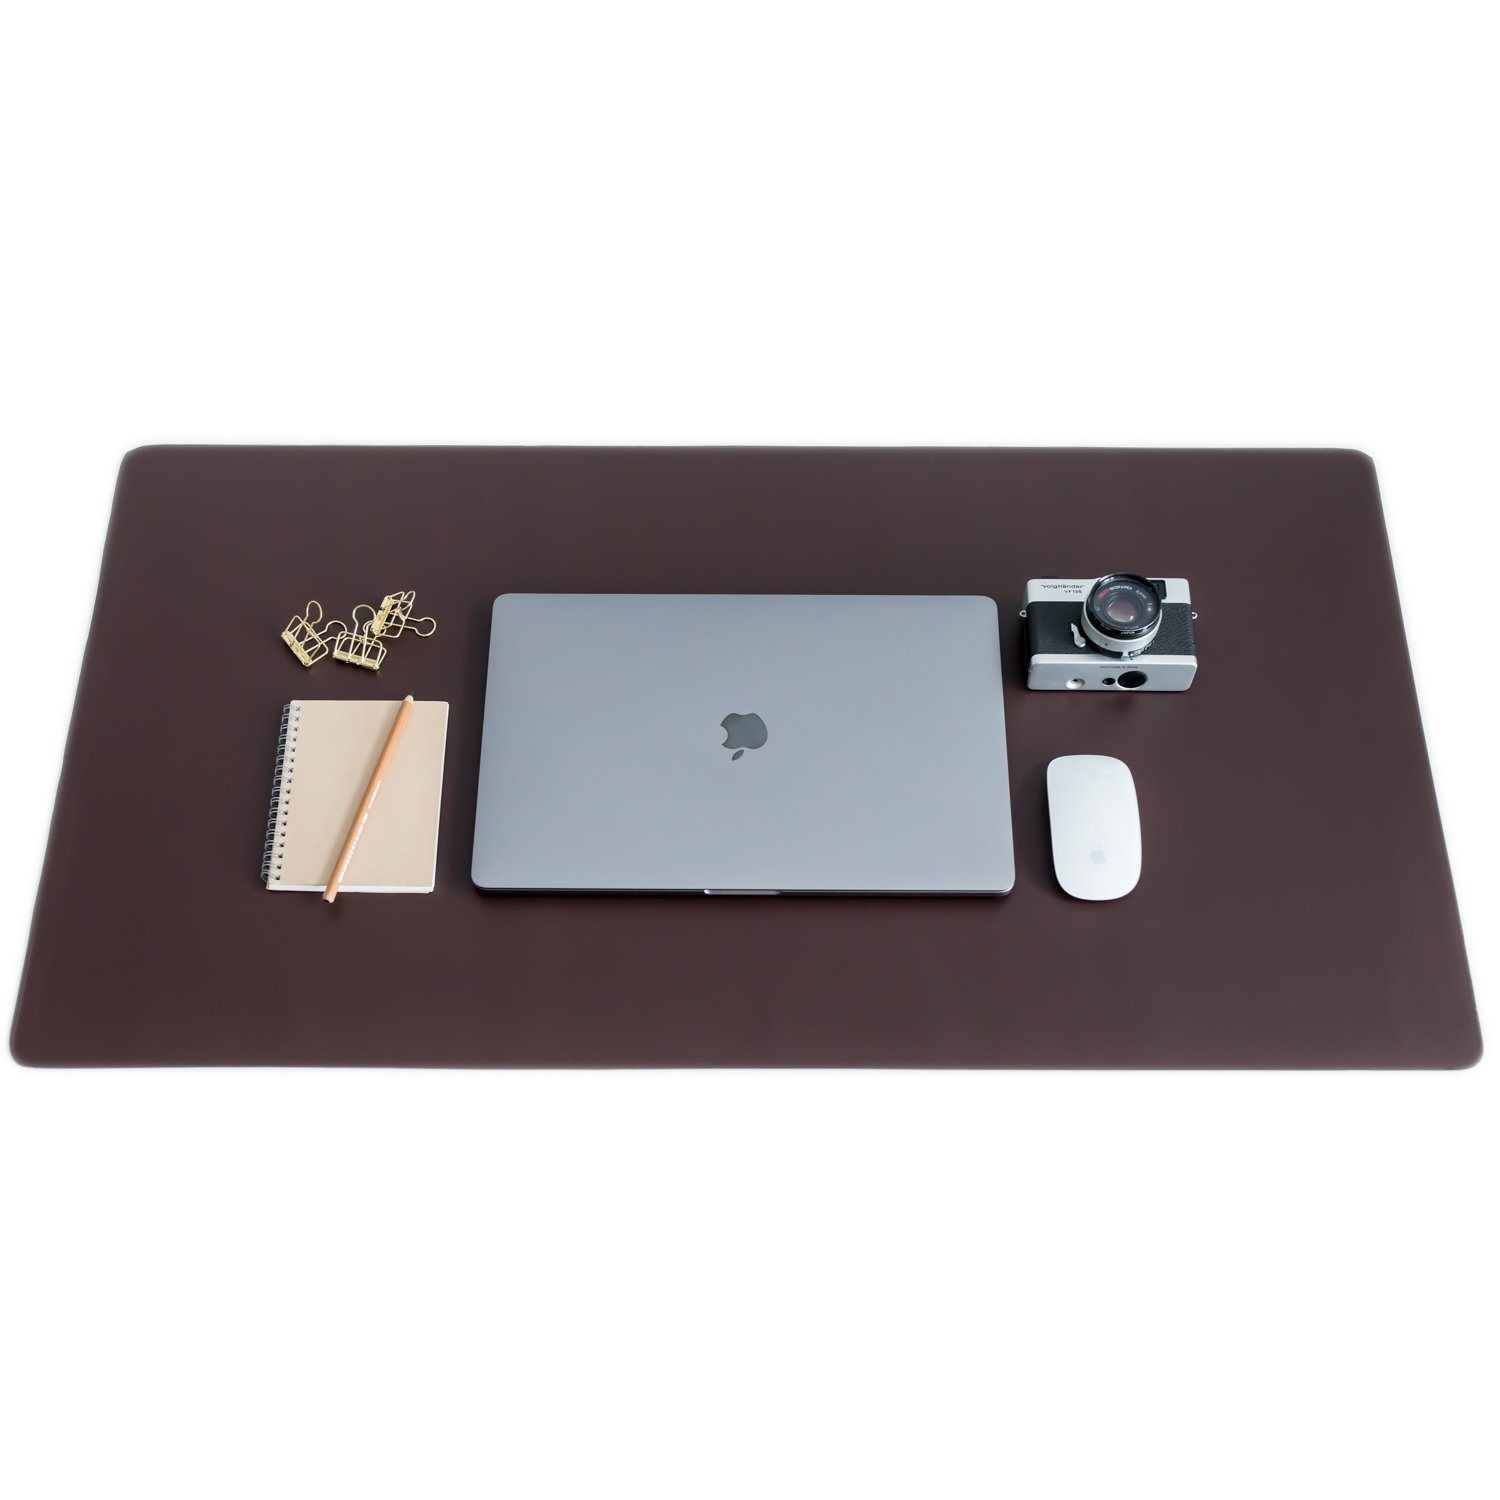 "ZBRANDS // Brown Leather Smooth Desk Mat Pad Blotter Protector, Extended Non-Slip Rectangular, Laptop Keyboard Mouse Pad (36"" x 20"")"